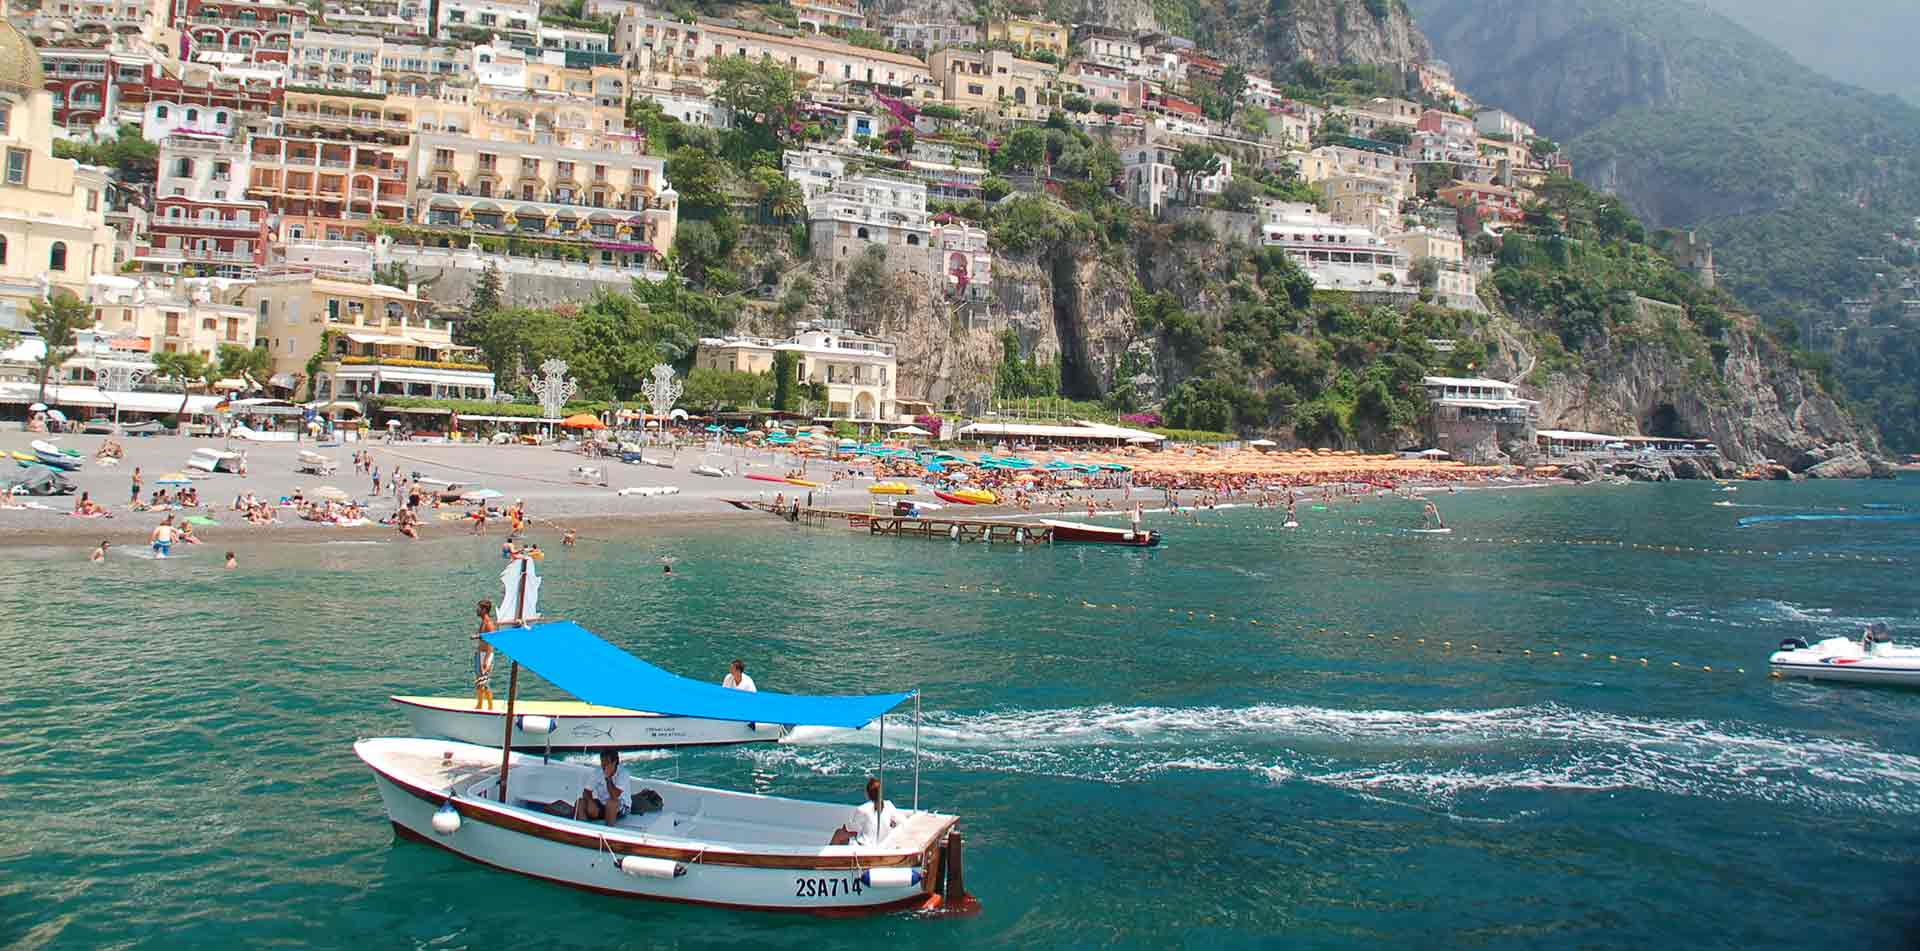 View of Cinque Terre from the water